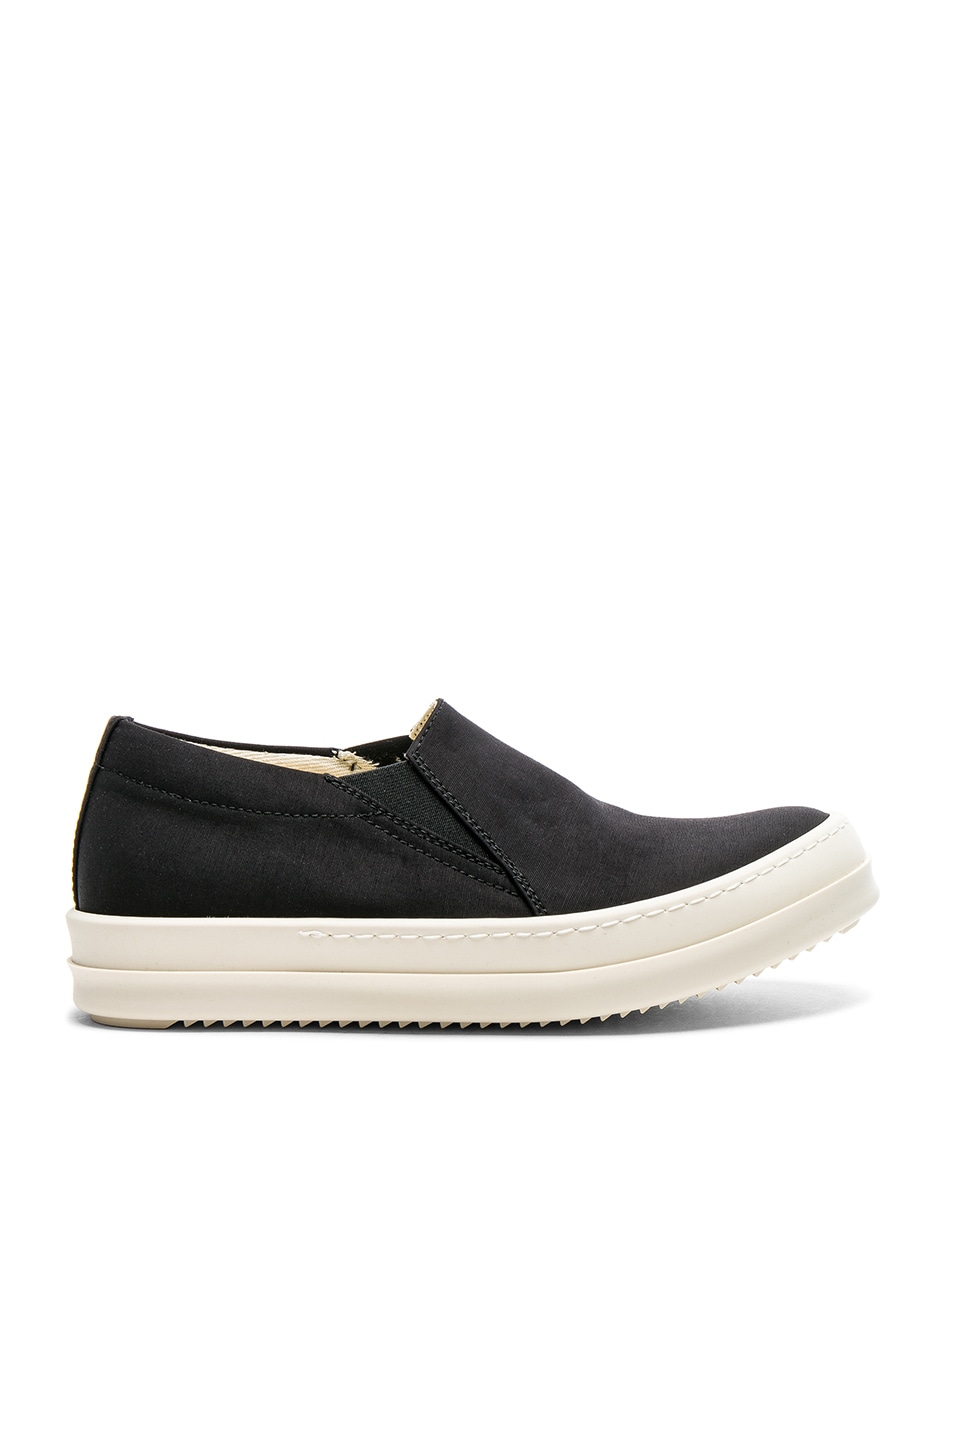 Image 1 of DRKSHDW by Rick Owens Scarpe Deck Sneakers in Black